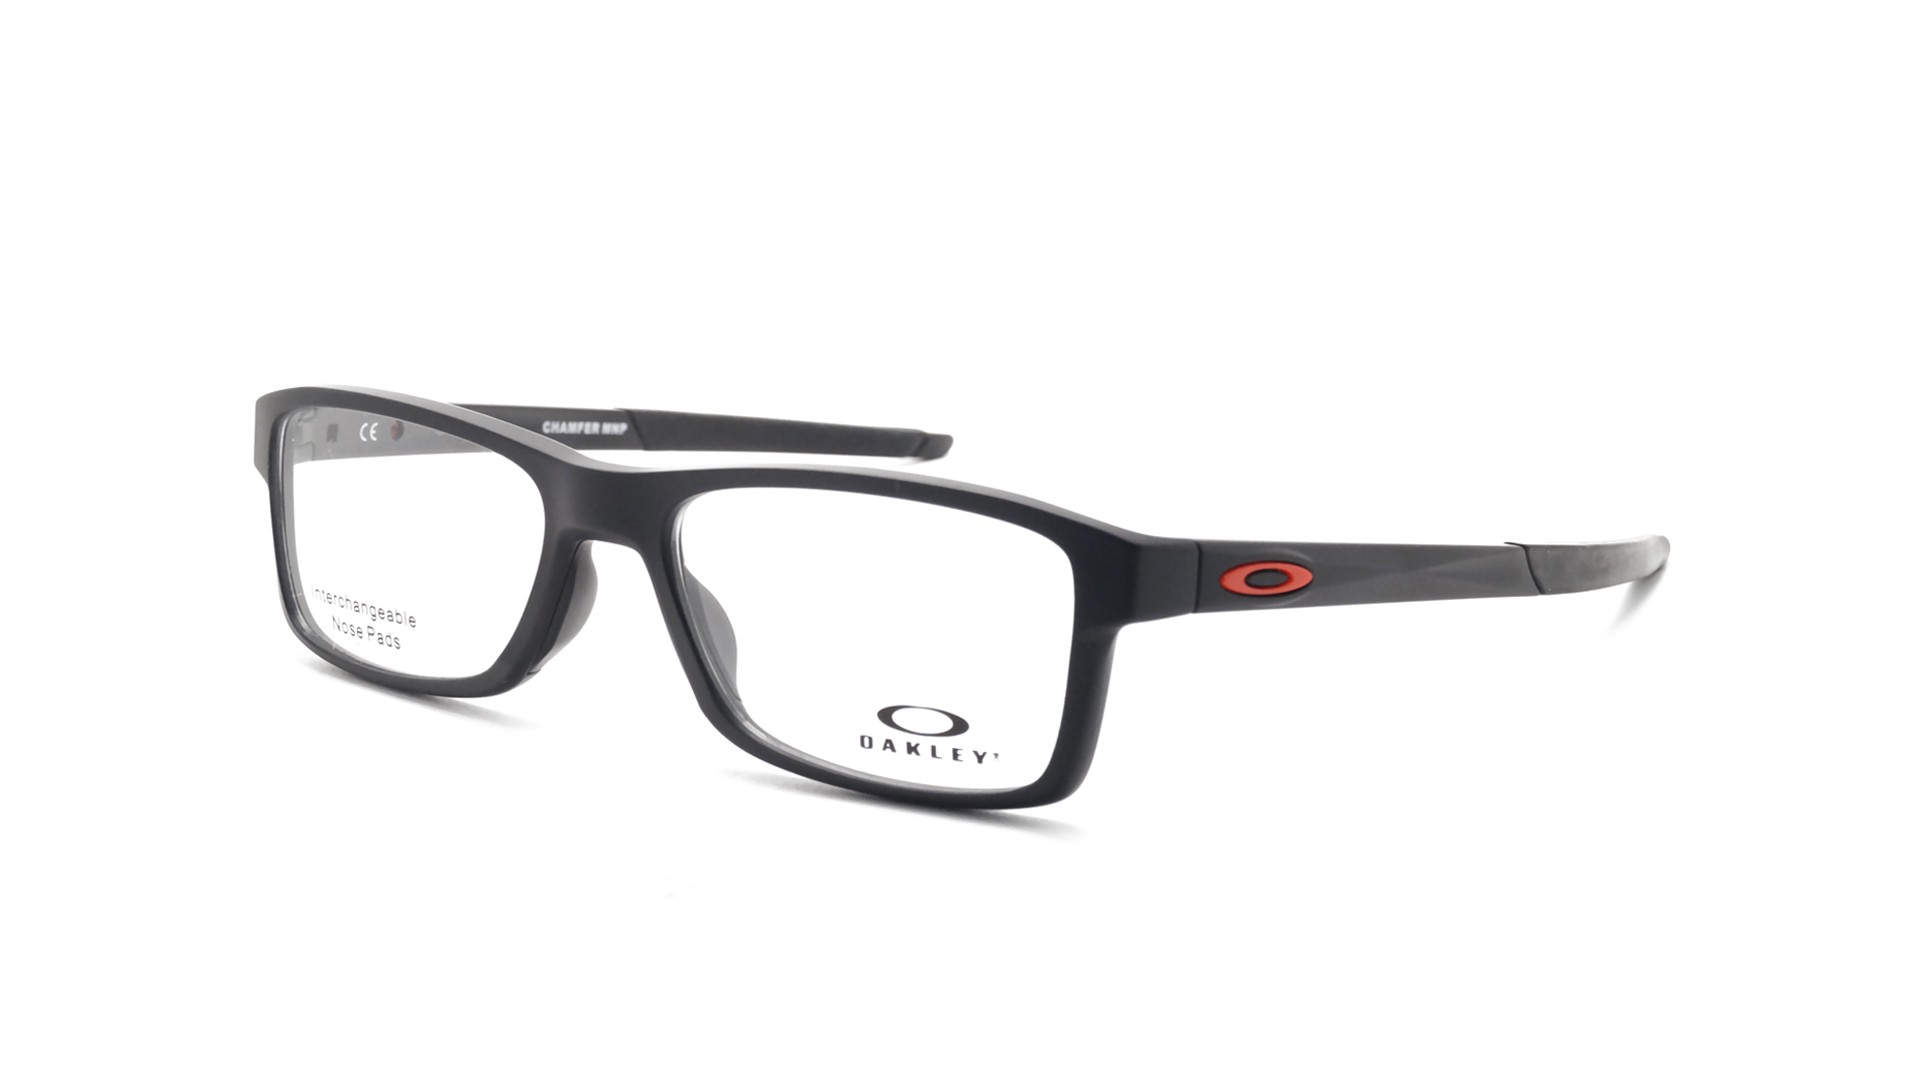 2932d2c3b6 Oakley Chamfer mnp Satin black Tru bridge Mat OX8089 01 54-18 ...